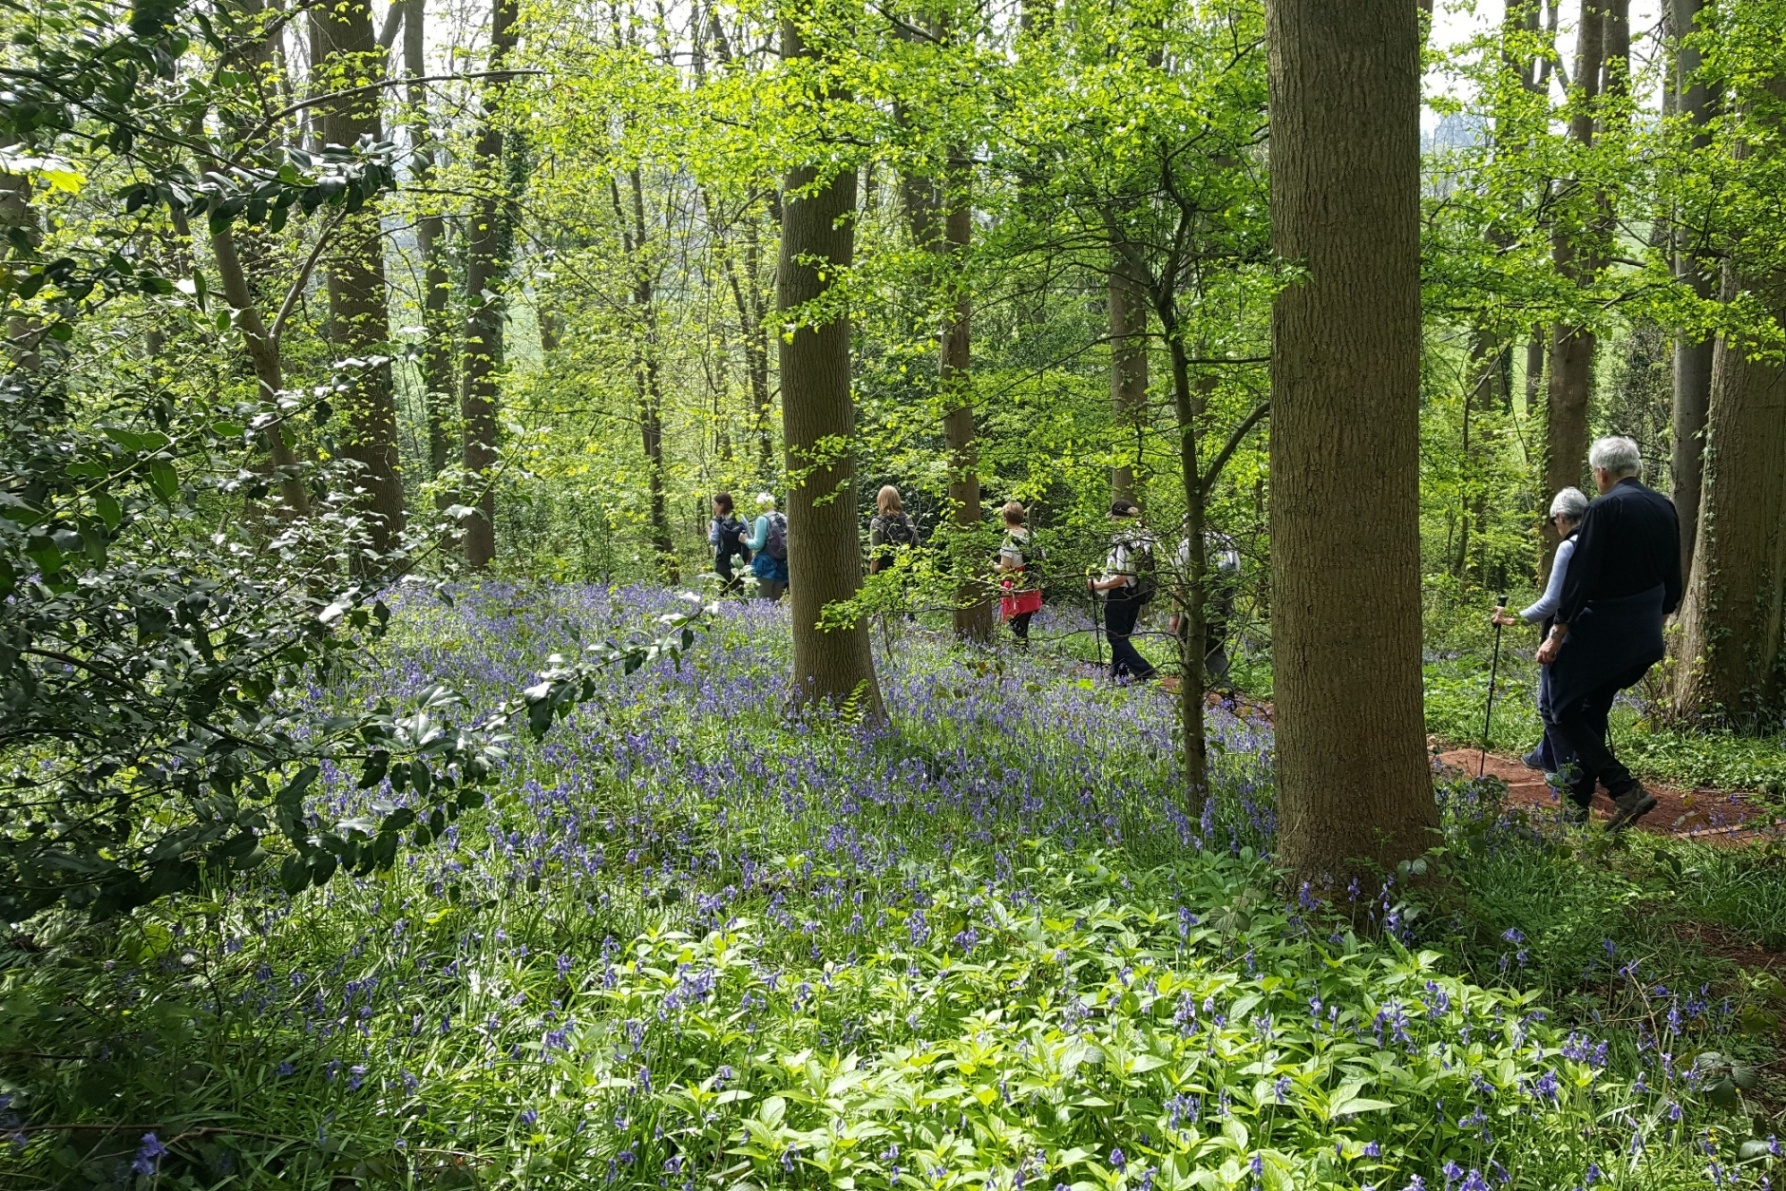 Bluebell time in Ashton Court